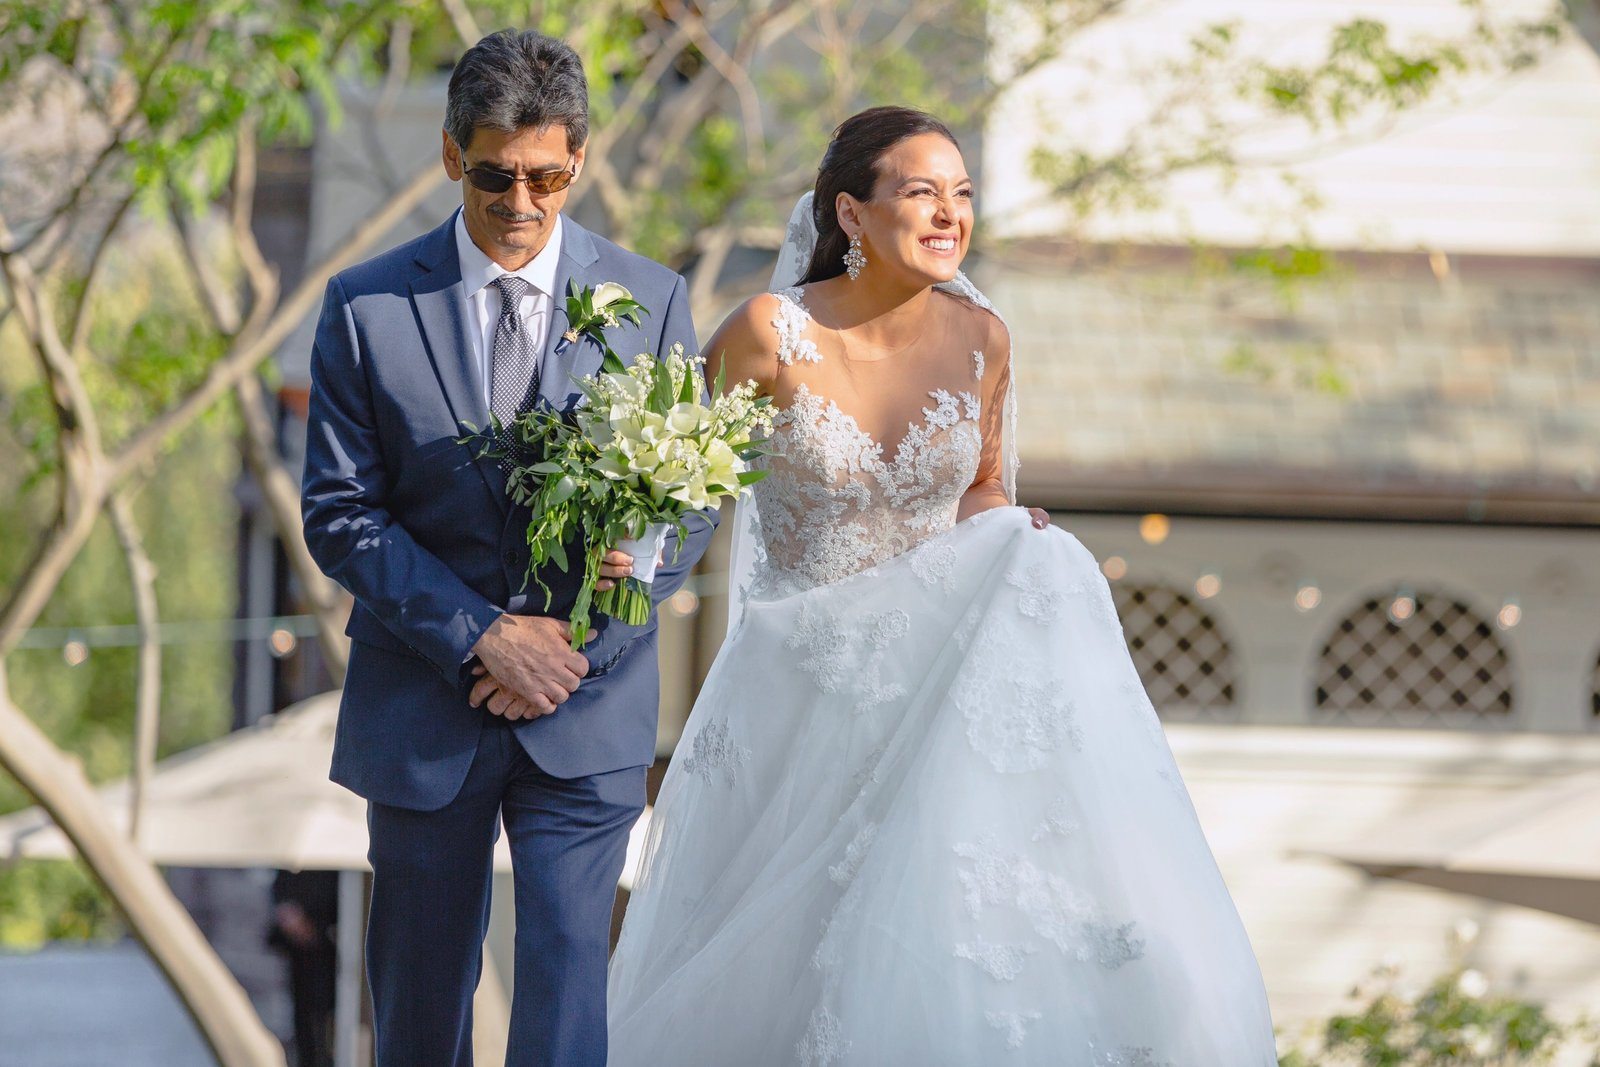 daniella and her father walkdown the aisle at the newhall mansion wedding venue